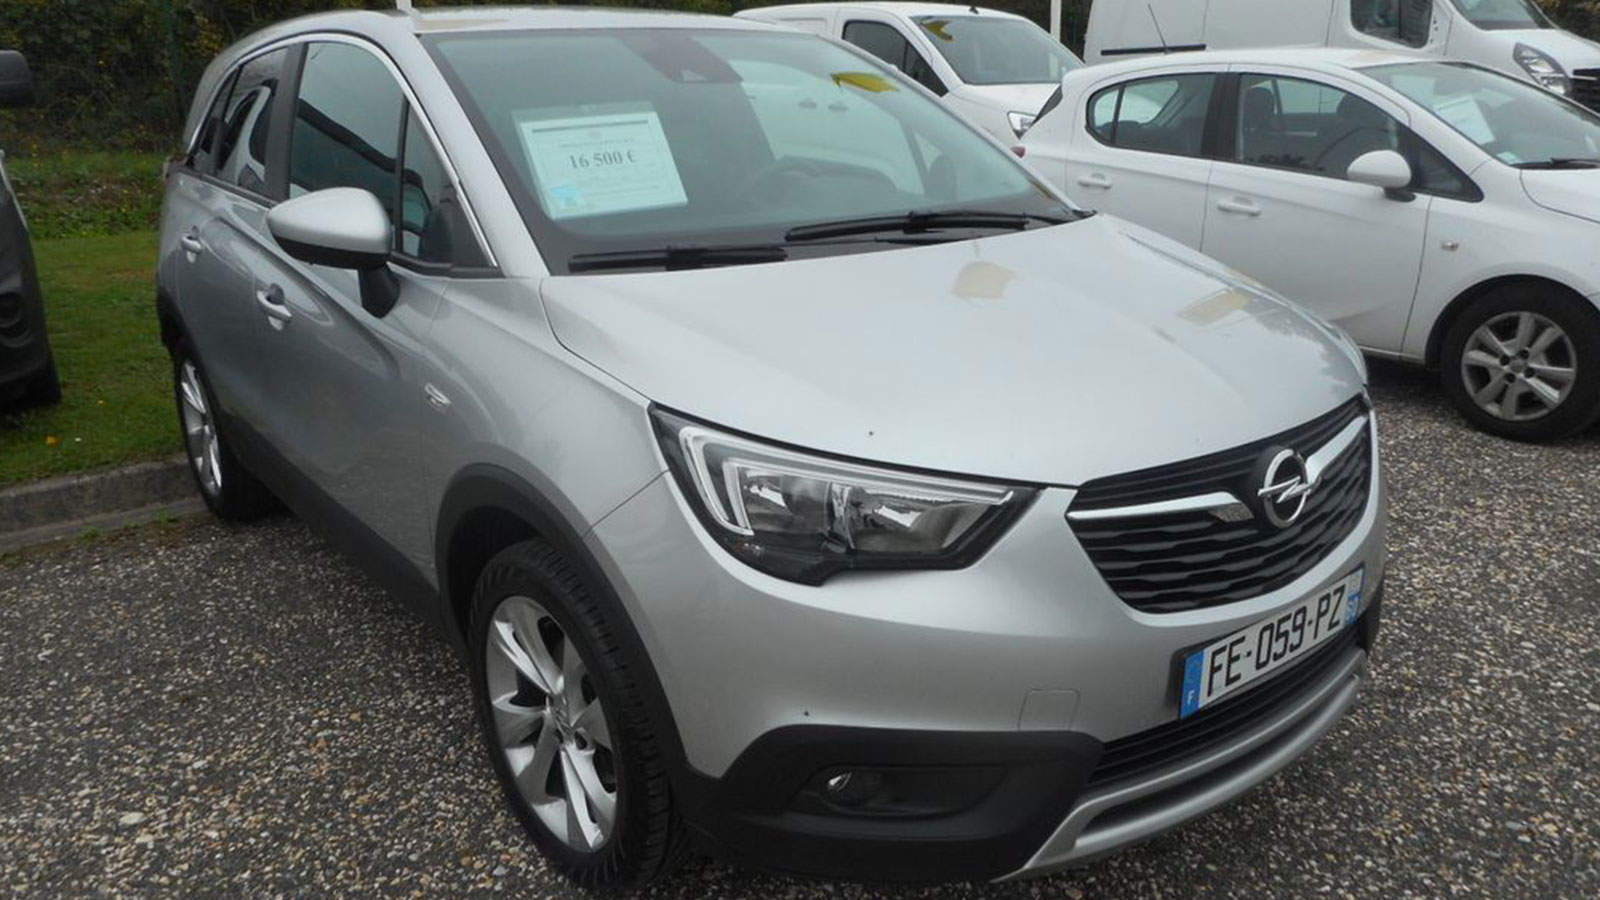 OPEL CROSSLAND X INNOVATION 1.2 TURBO 110CH